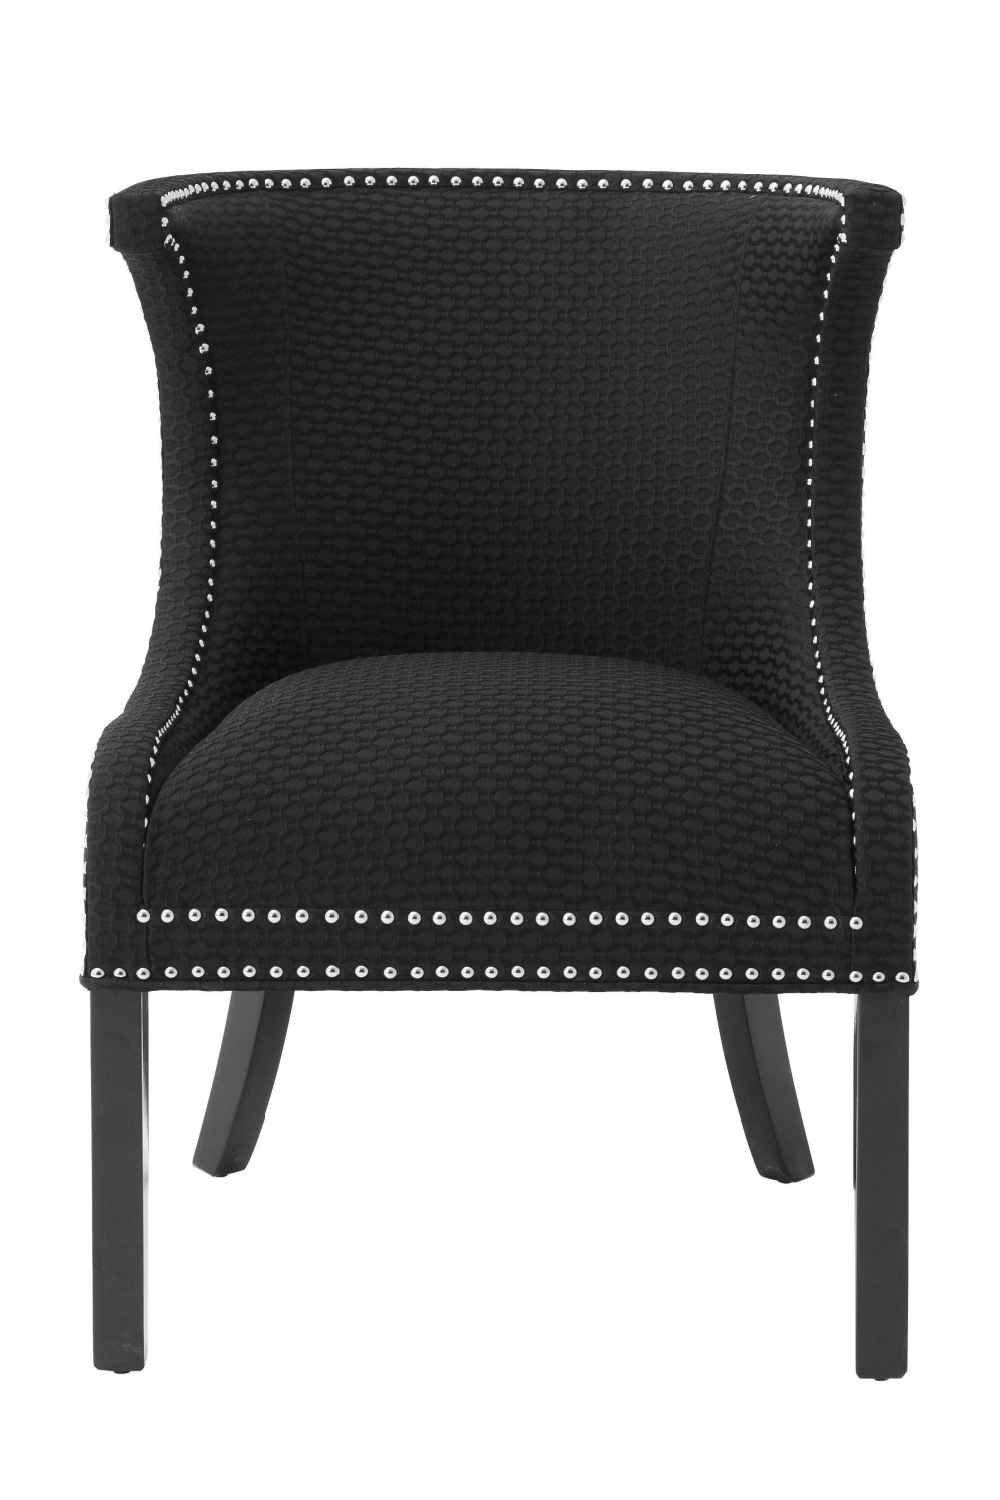 Black Wingback Side Chair | Eichholtz Elson | #1 Eichholtz Retailer